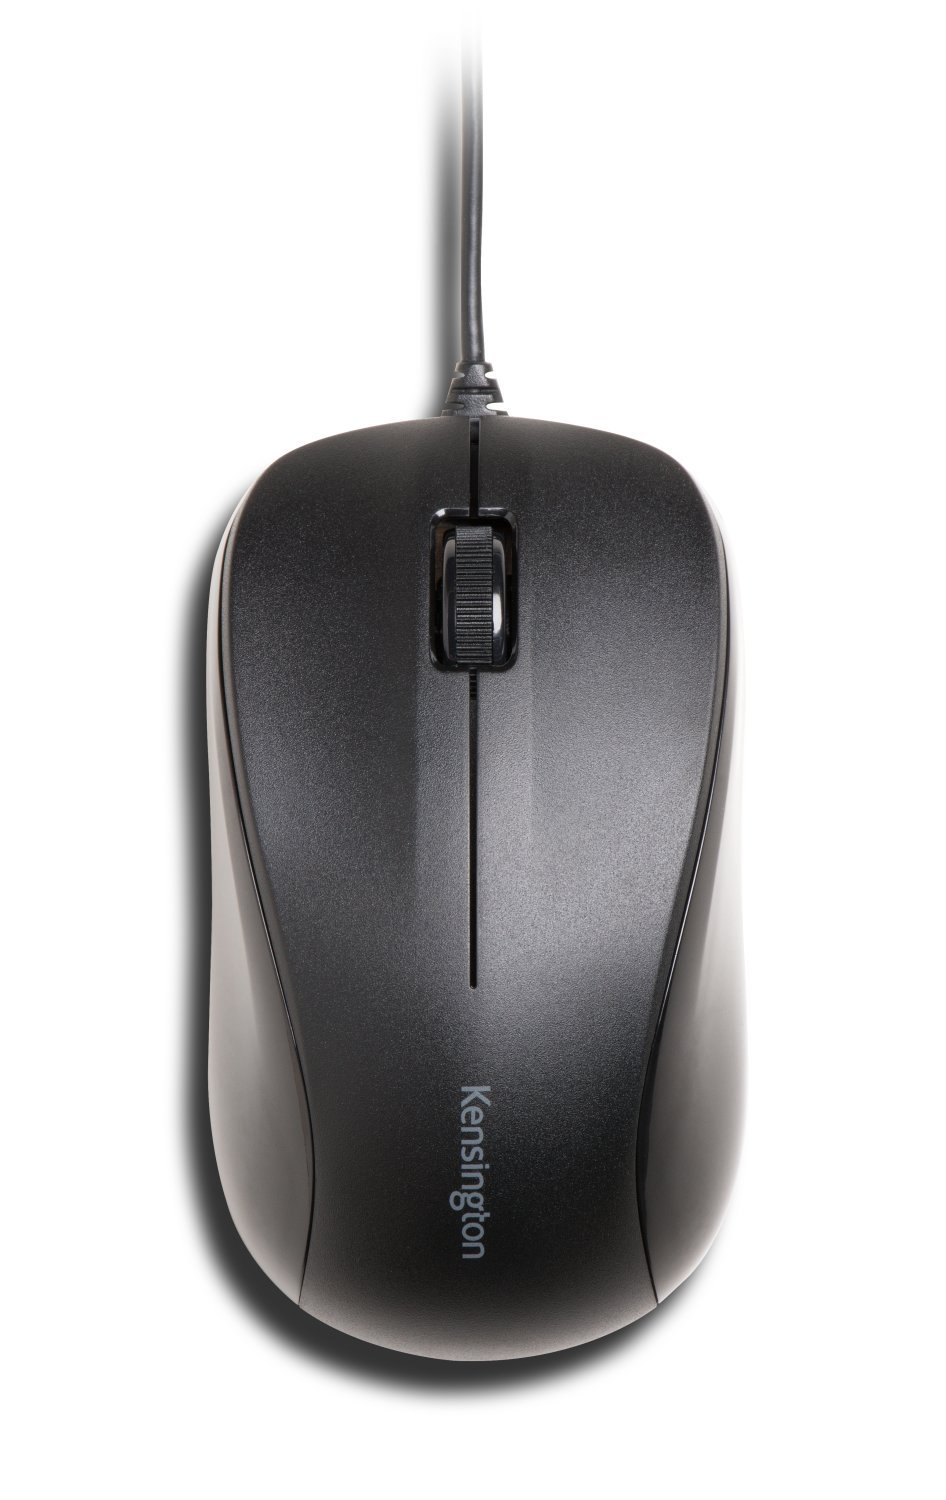 Kensington Silent Mouse-for-Life Wired USB Mouse - Black (K72110US)